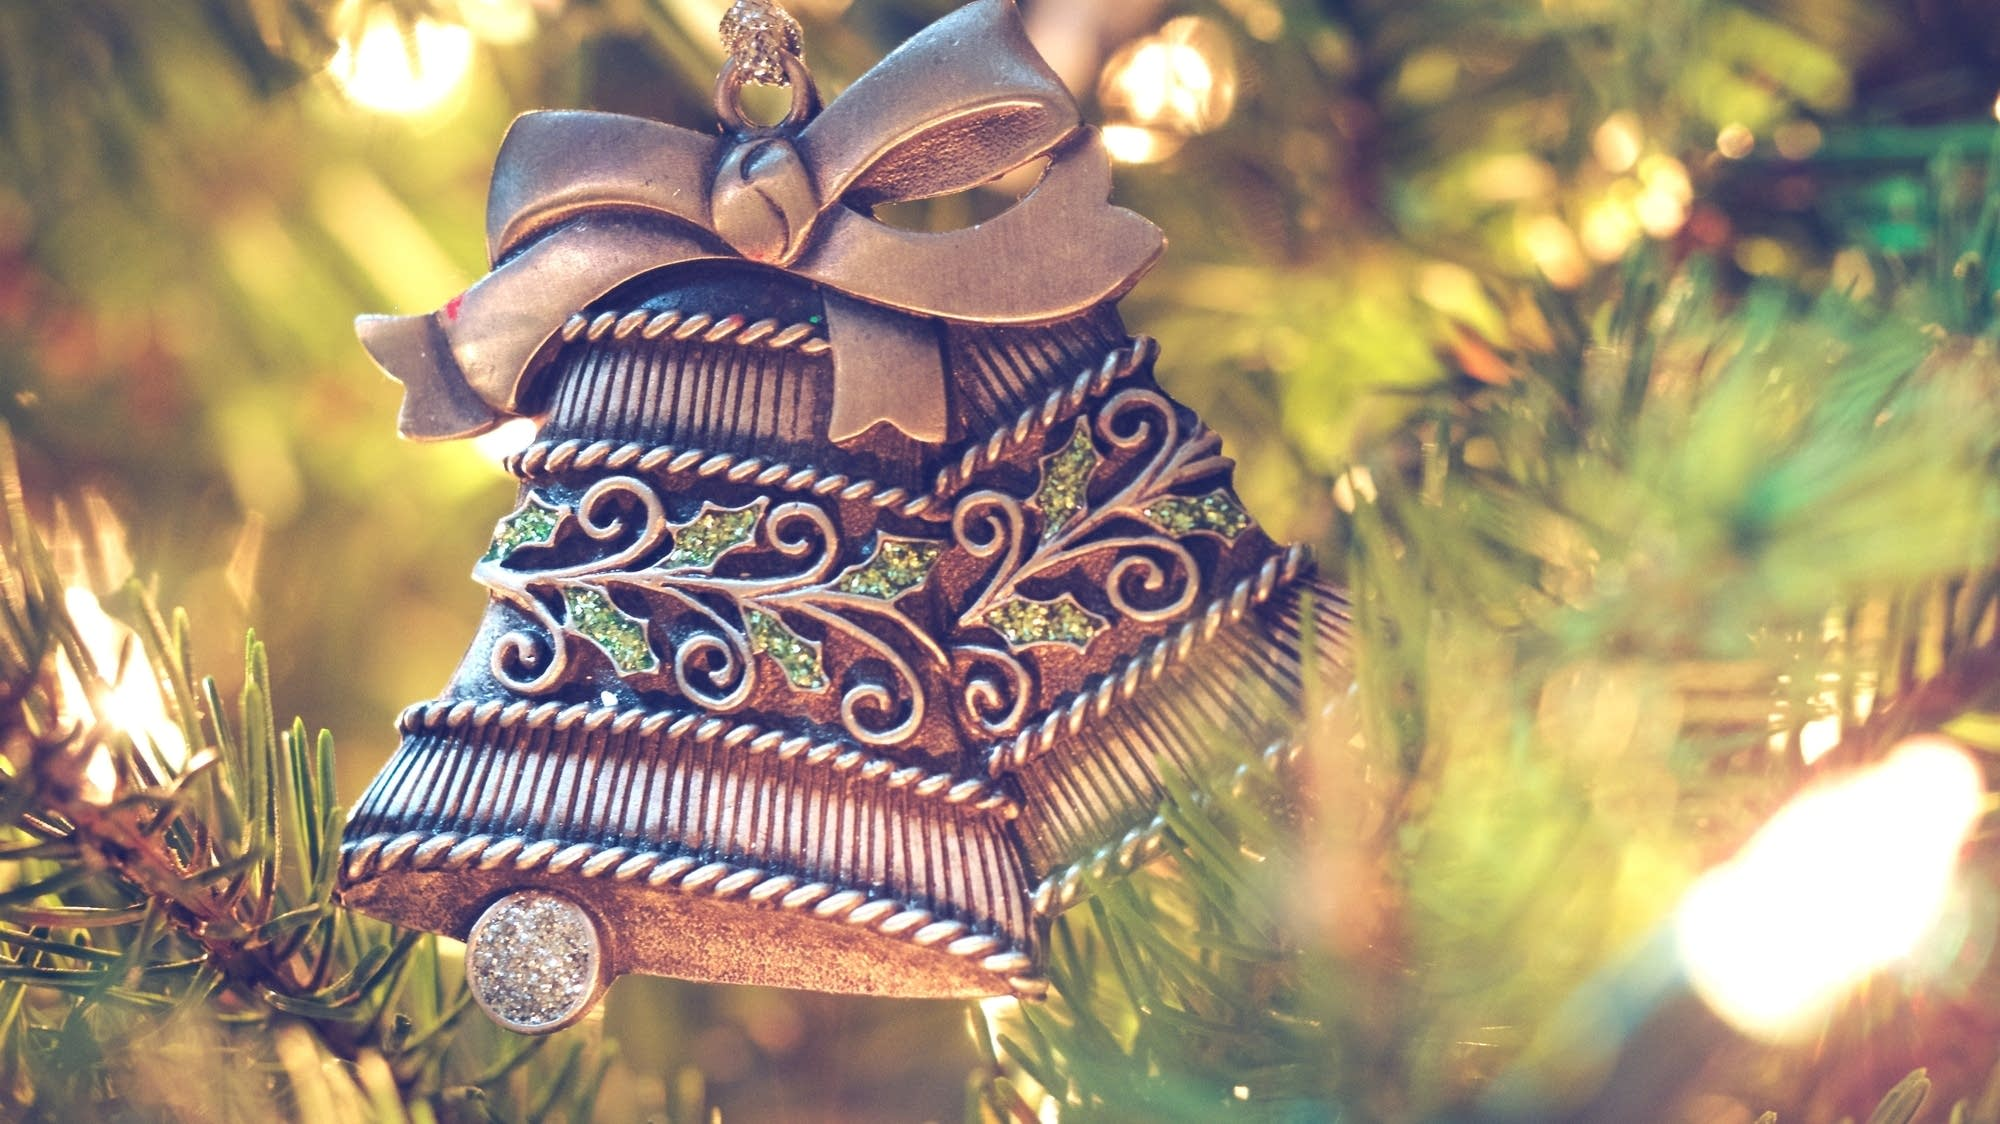 Bell ornaments decorate a tree.